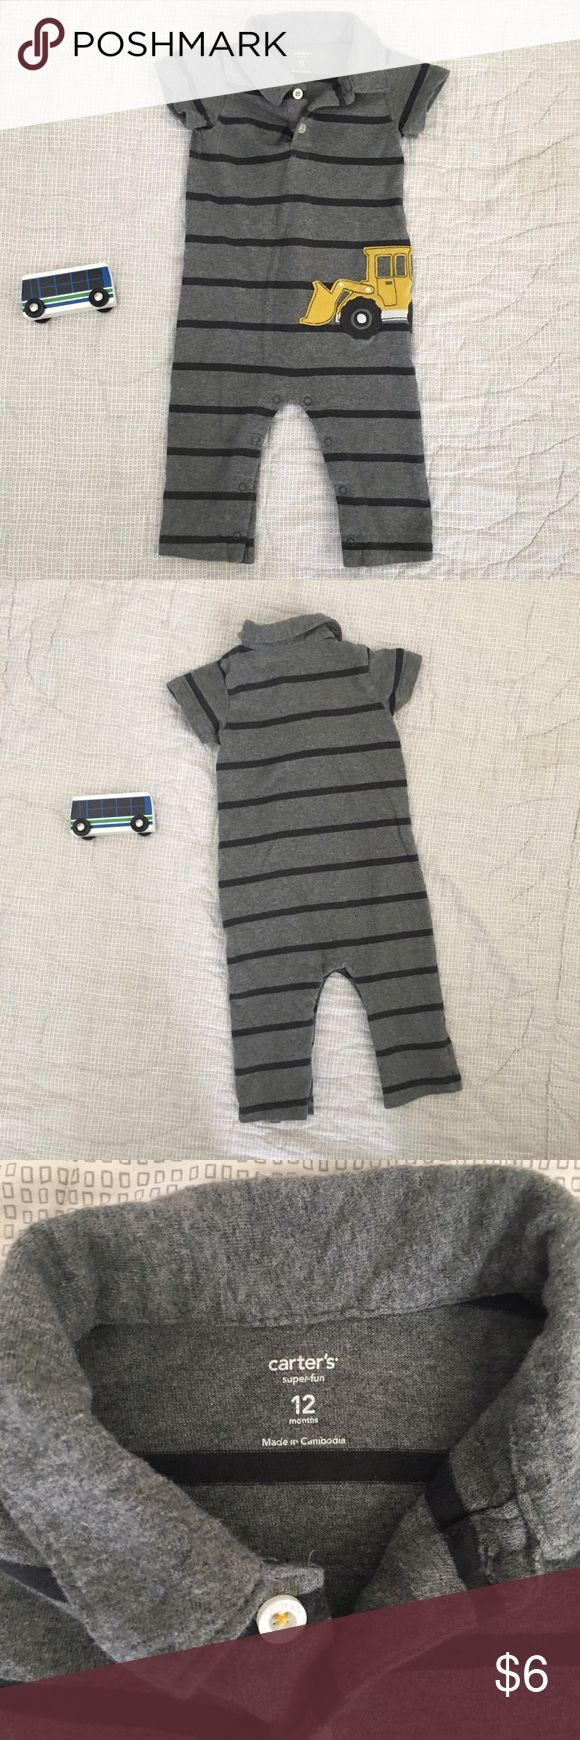 Carter's grey one piece collar excavator 12 months Carter's size gray and black 12 months construction one piece romper with snap closure pants and collar top with buttons. Has a yellow backhoe excavator digger on the front. Smoke free dog friendly home EUC Carter's One Pieces Bodysuits